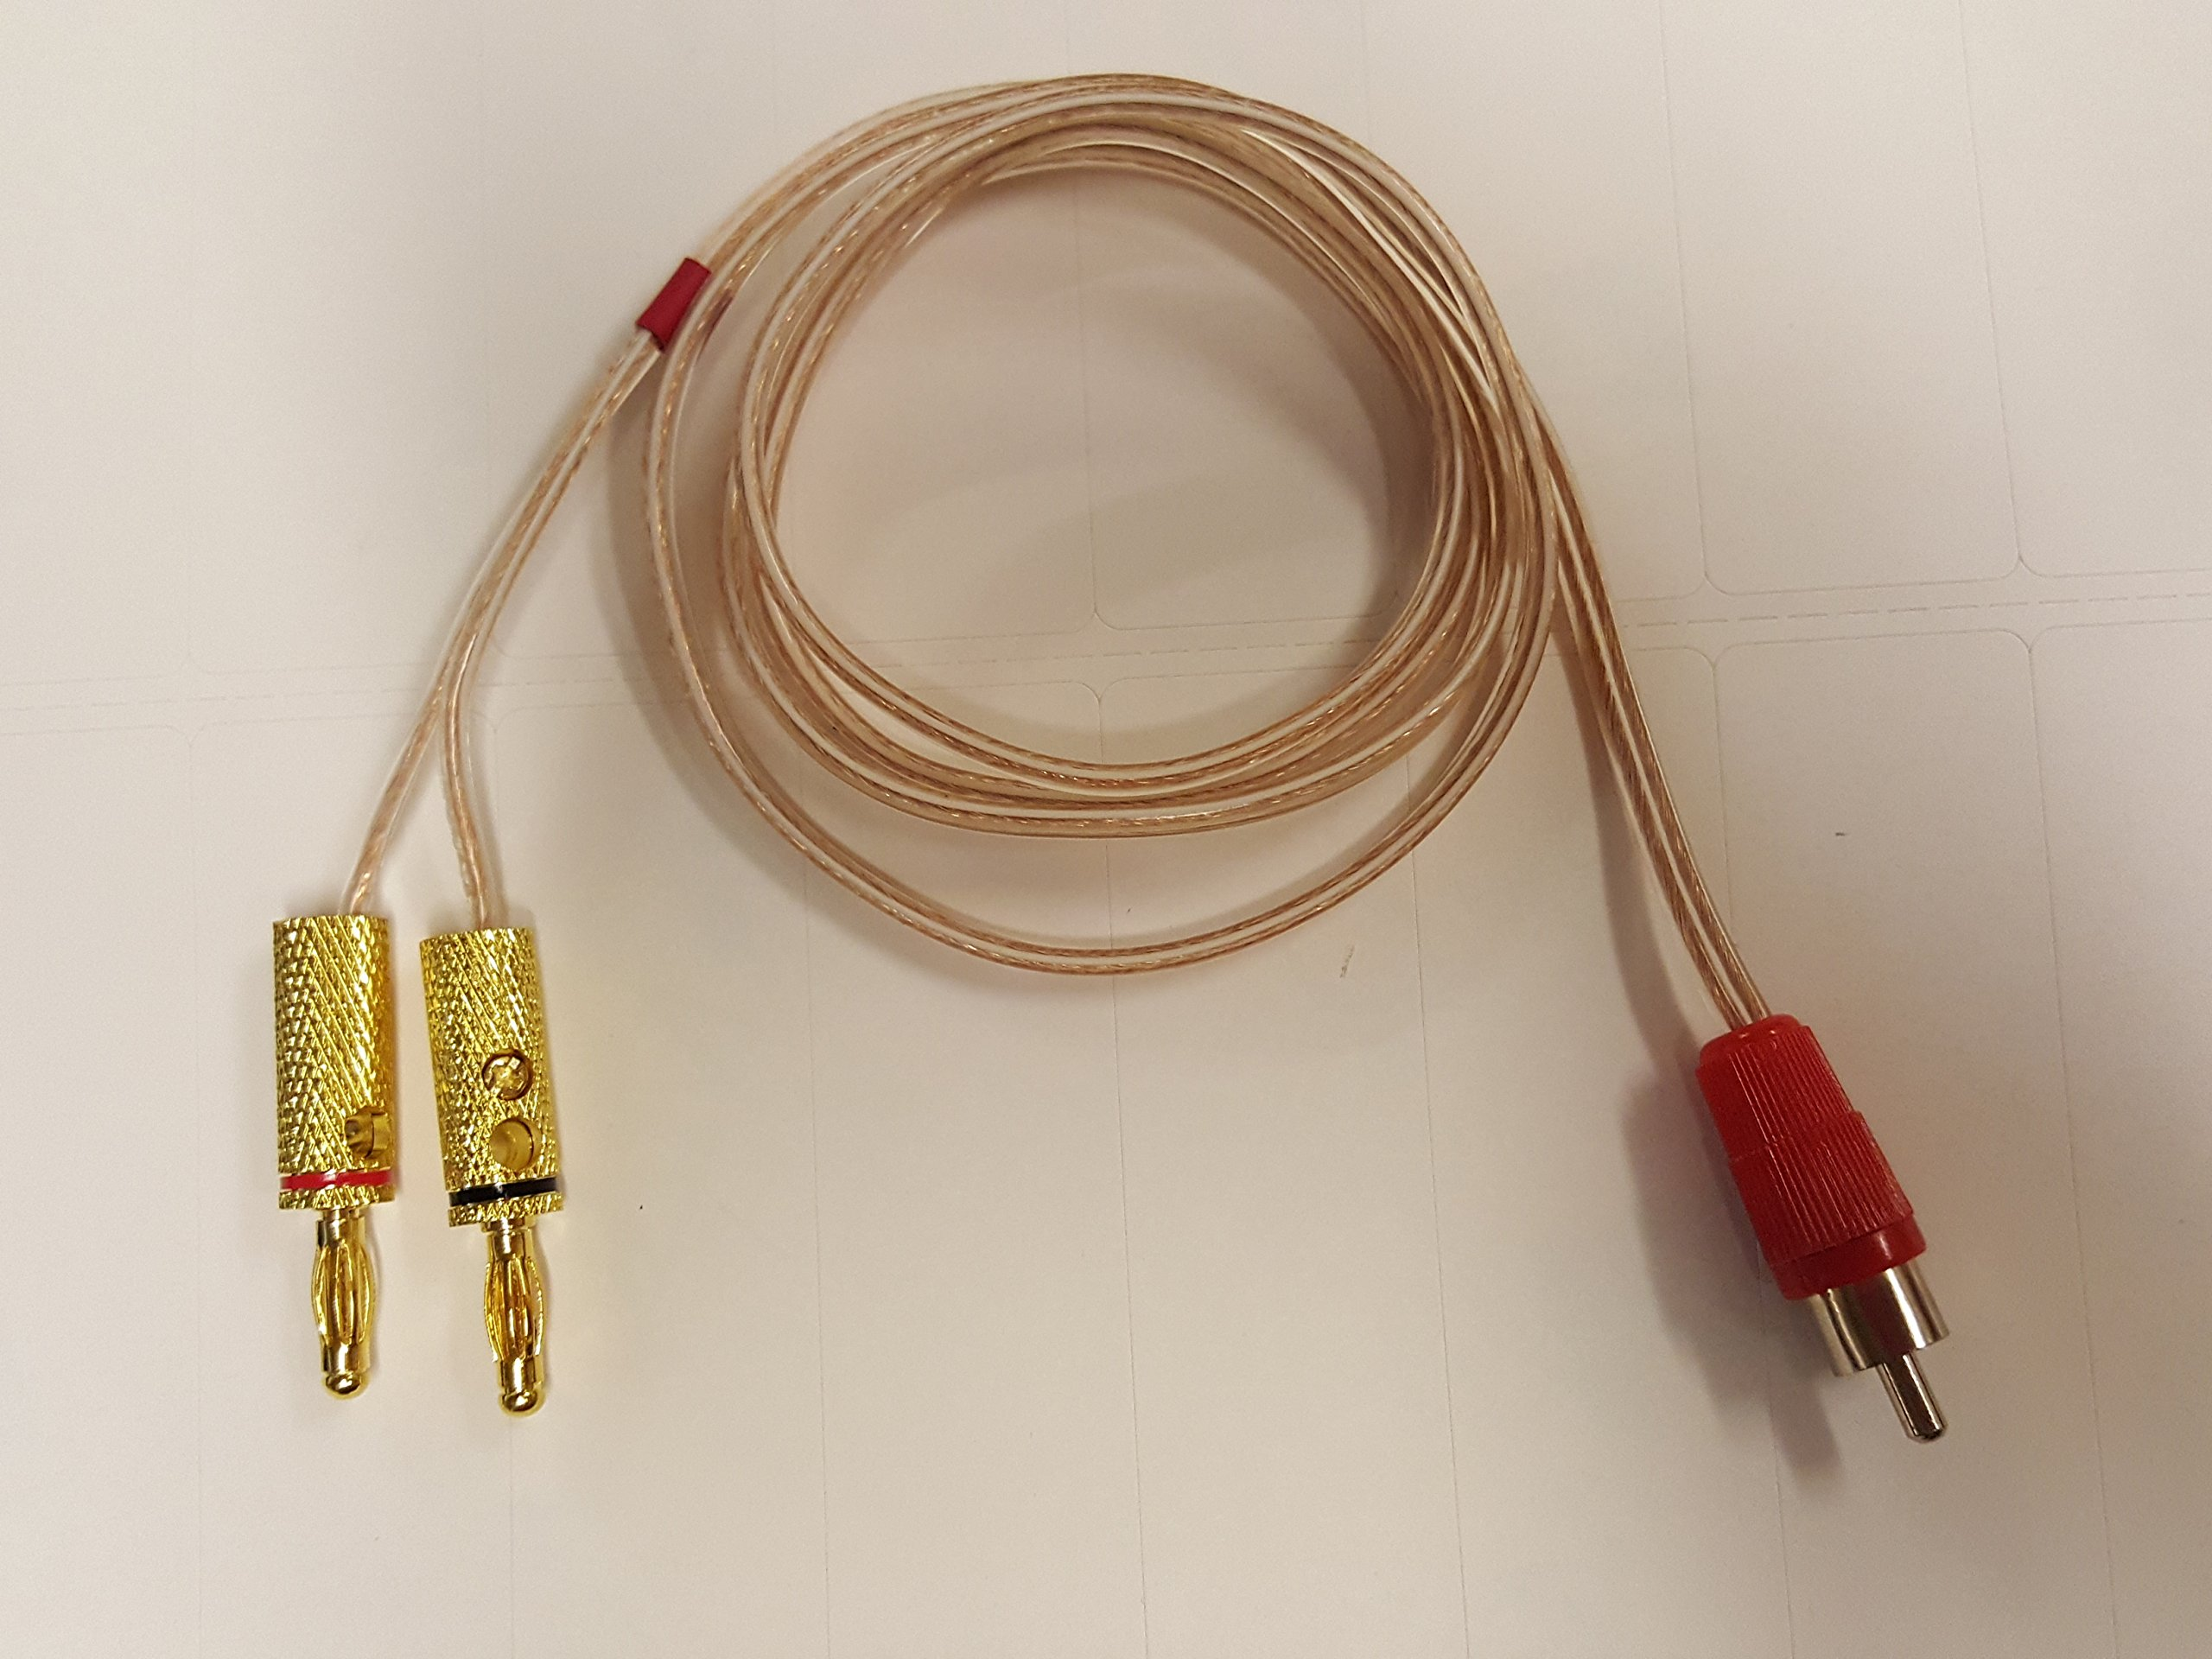 3 Foot - Pair of RCA Males (Black & Red) to 2 Pairs of Banana Plugs on 16 AWG Speaker by iecables